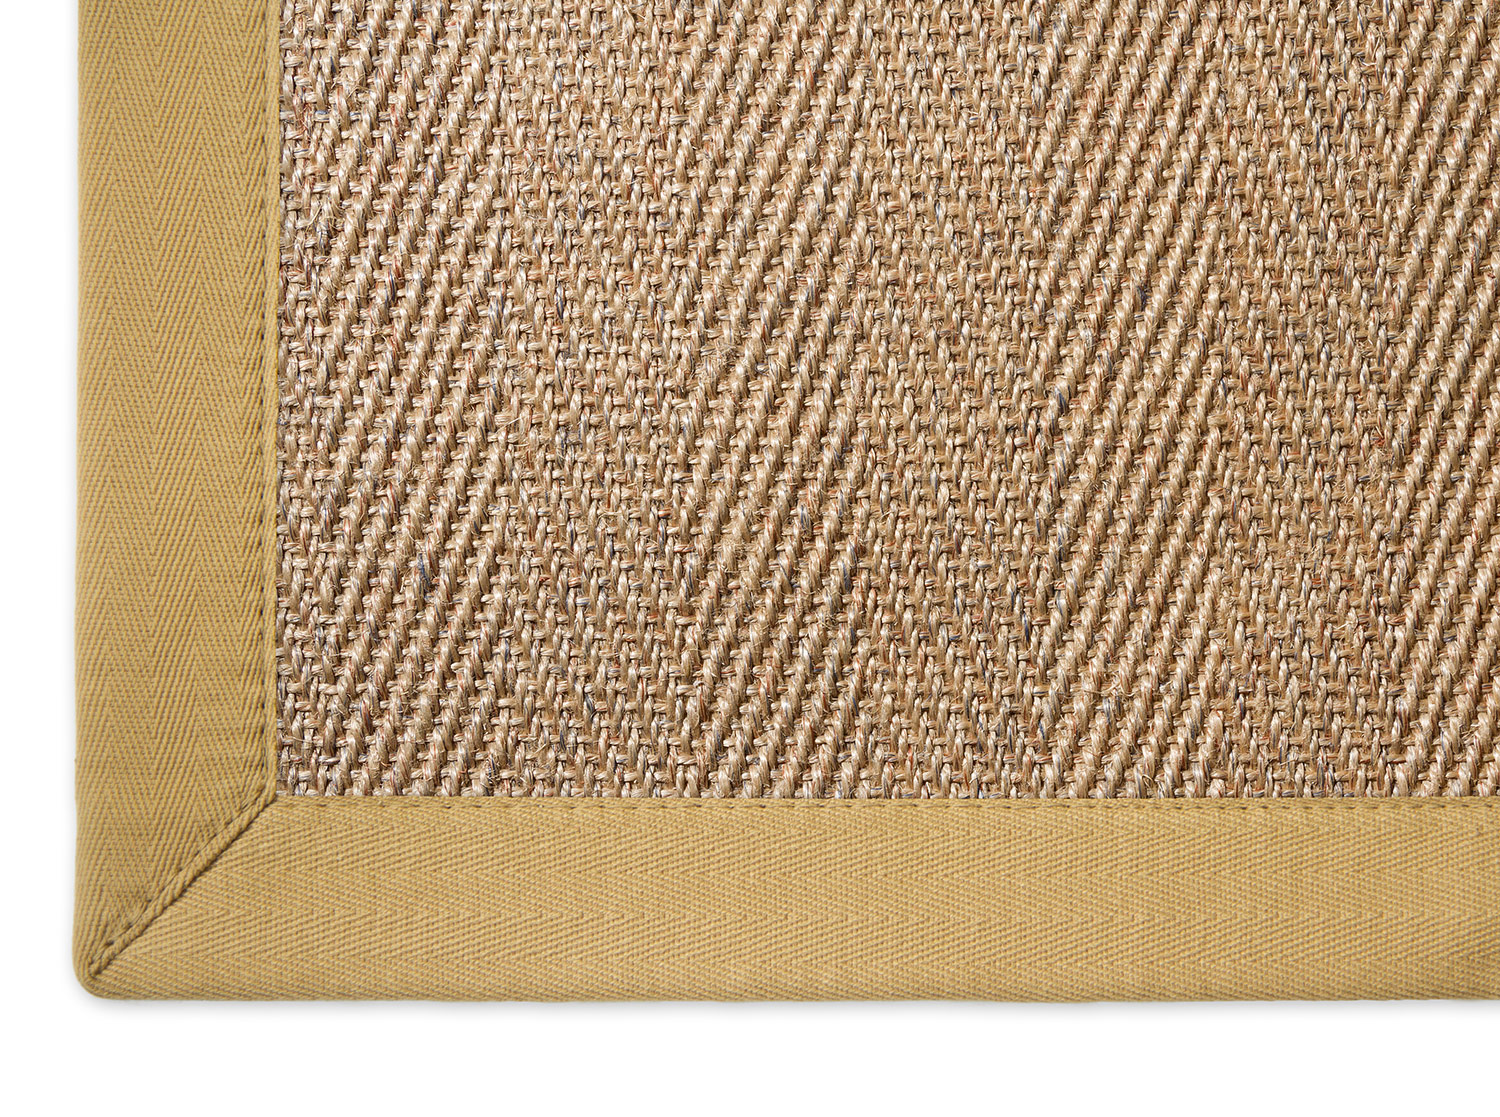 sisal teppich 140x200 sisal teppich manaus natur meliert mit stoffbordre bild with sisal. Black Bedroom Furniture Sets. Home Design Ideas